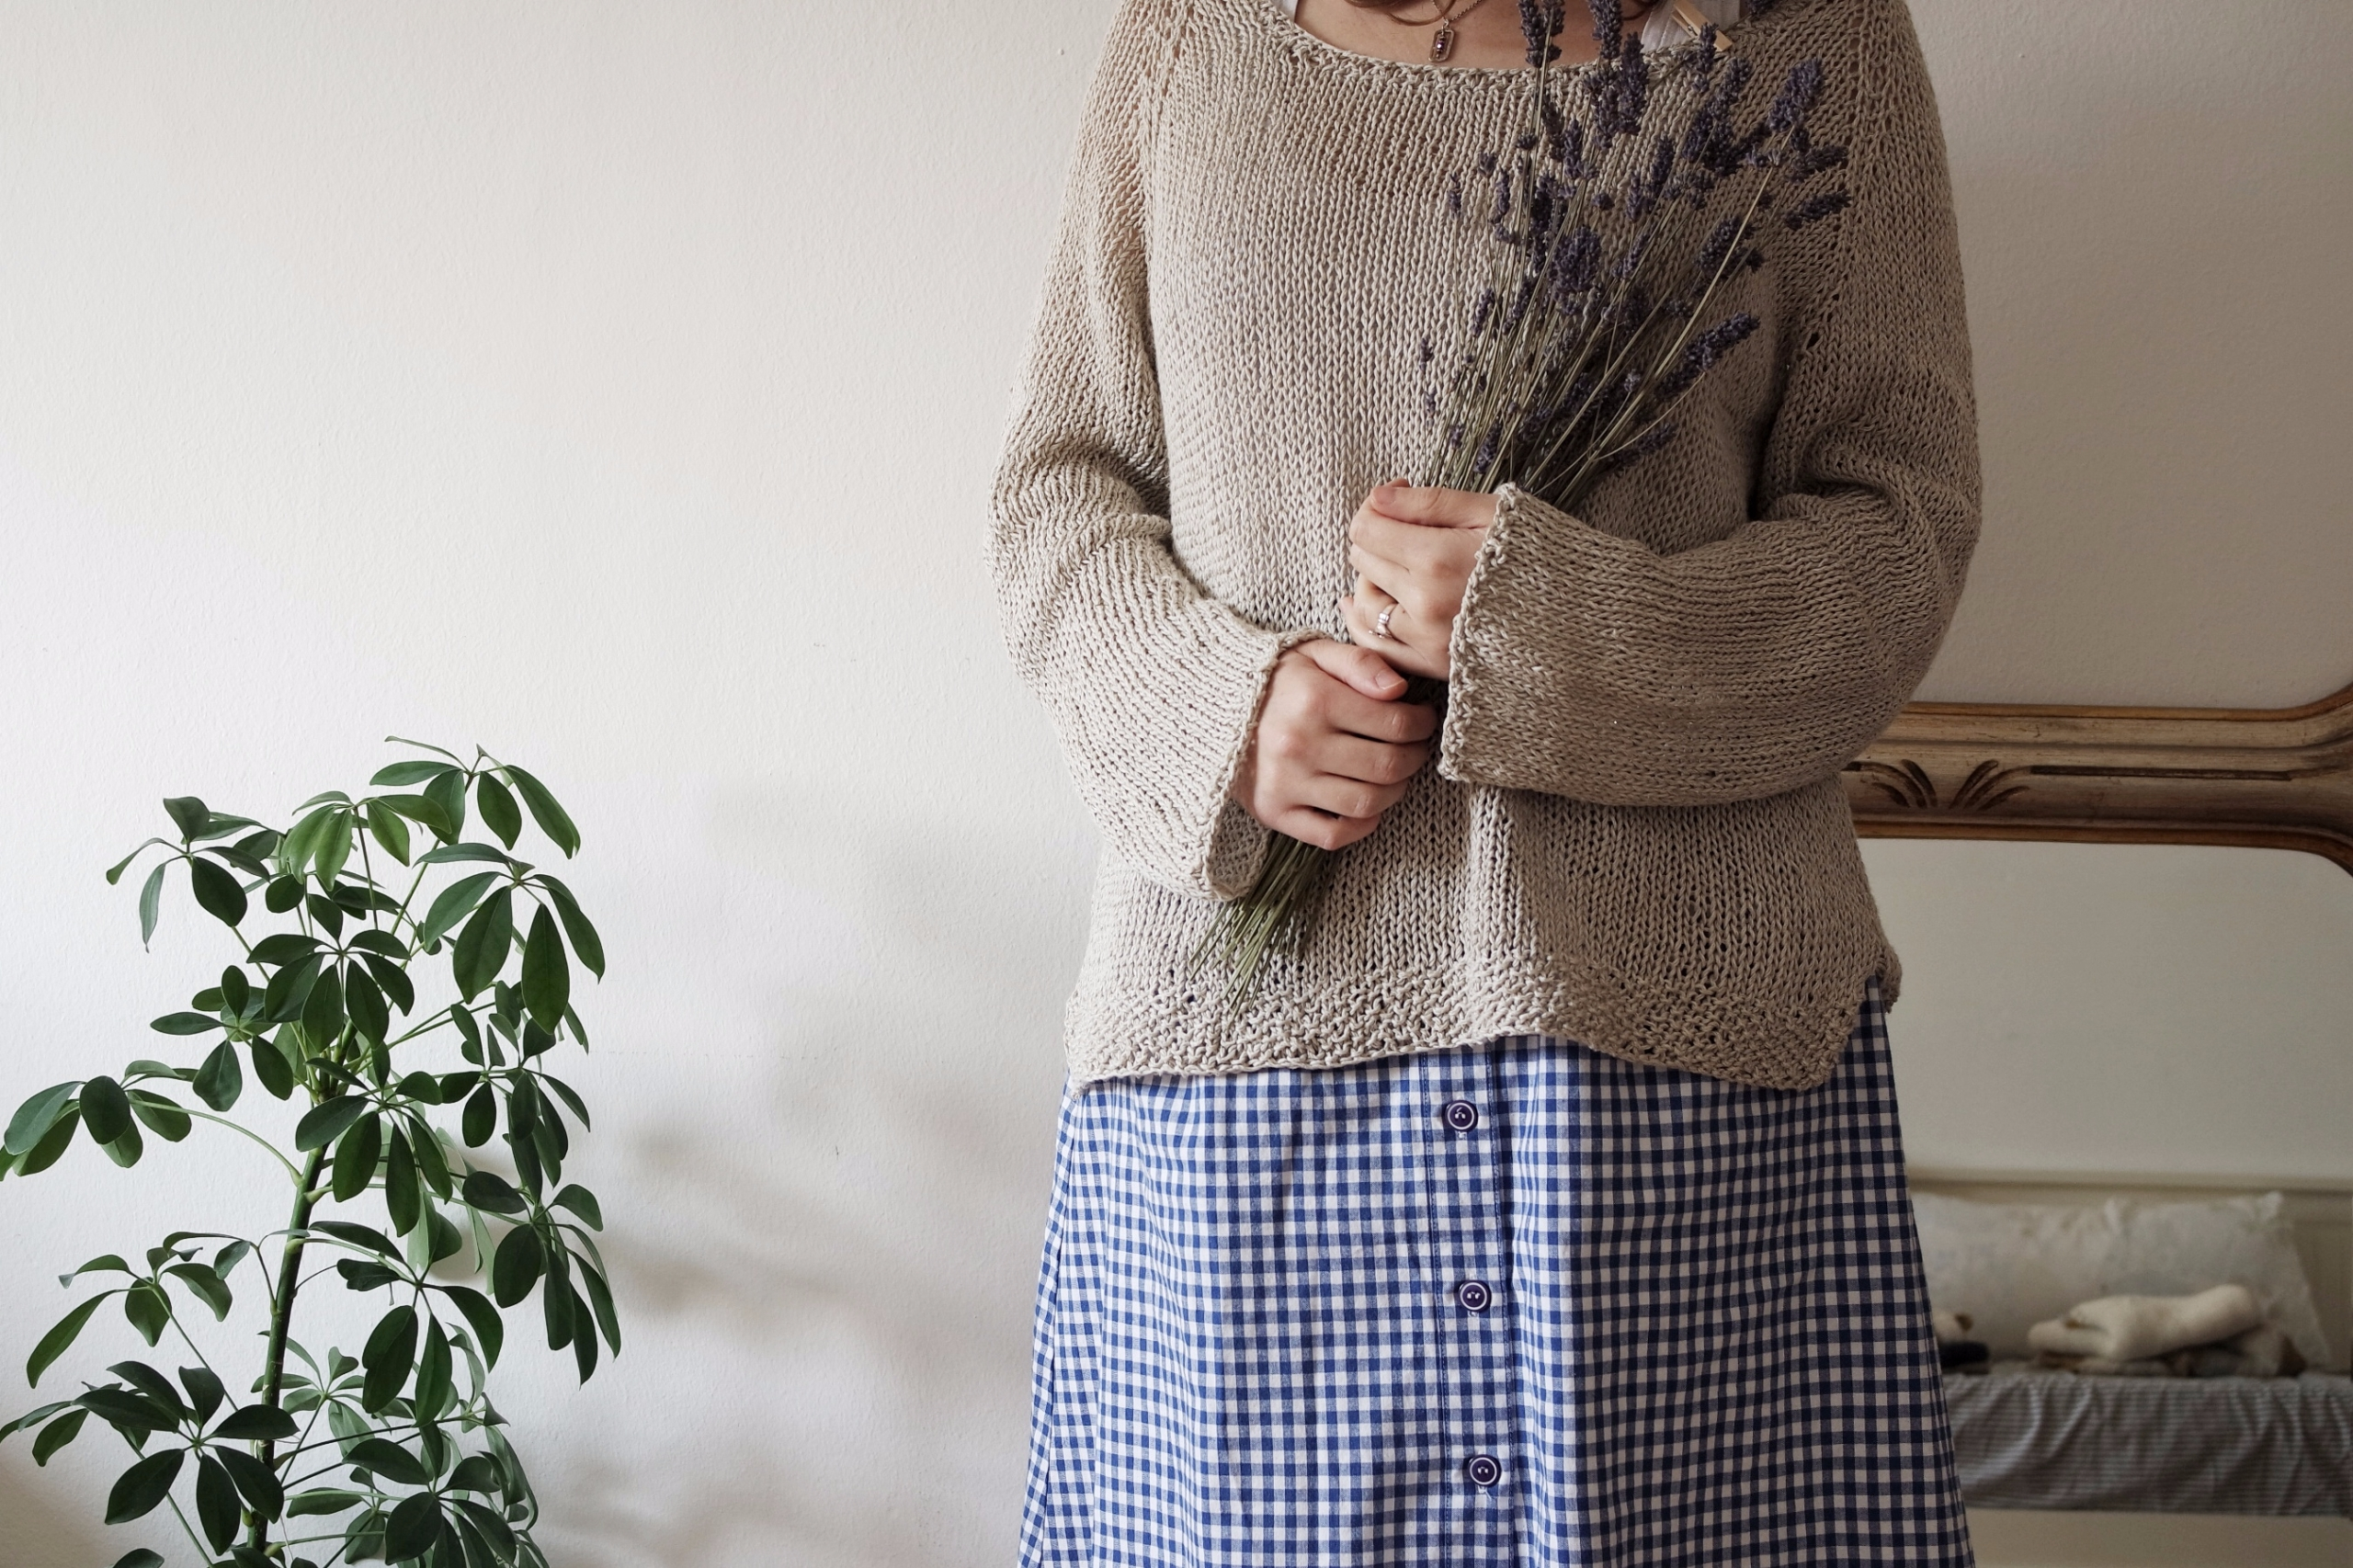 Cotton linen sweater. Design ha - unpeusauvage | ello